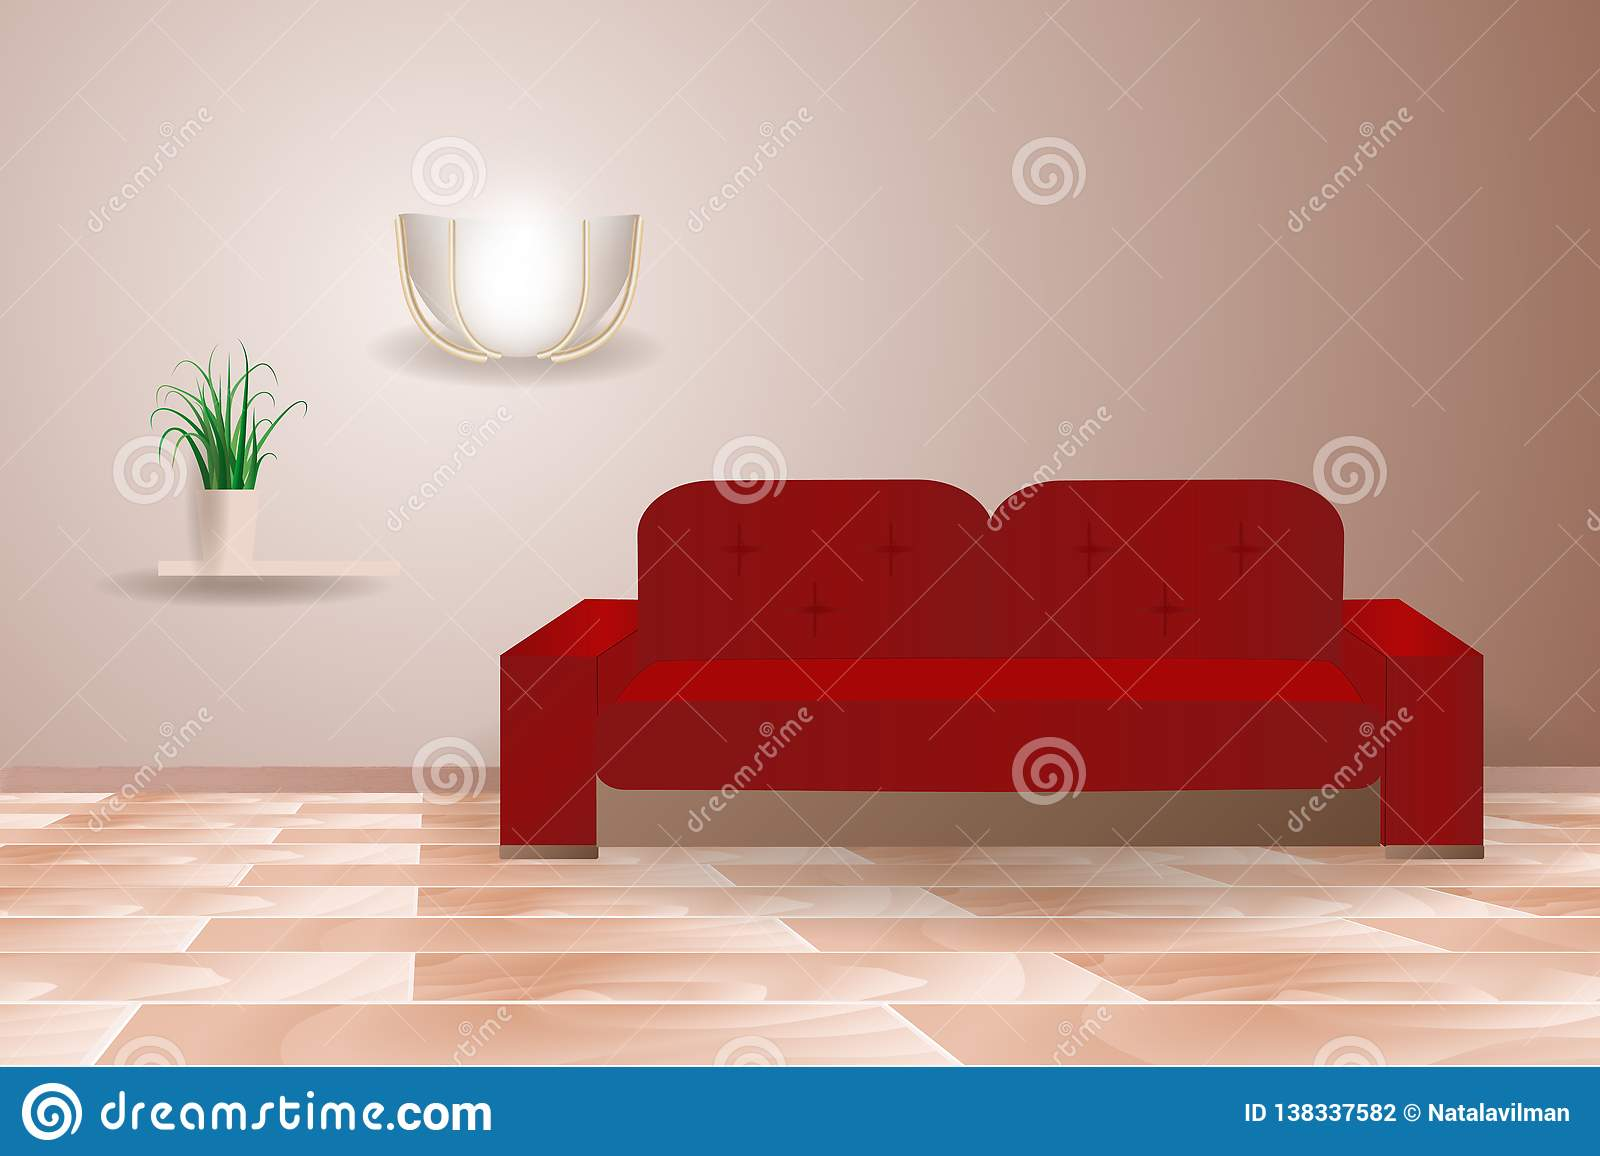 Fietswiel Verlichting Intertoys Room Interior Sofa Living Realistic Red With Furniture Composition